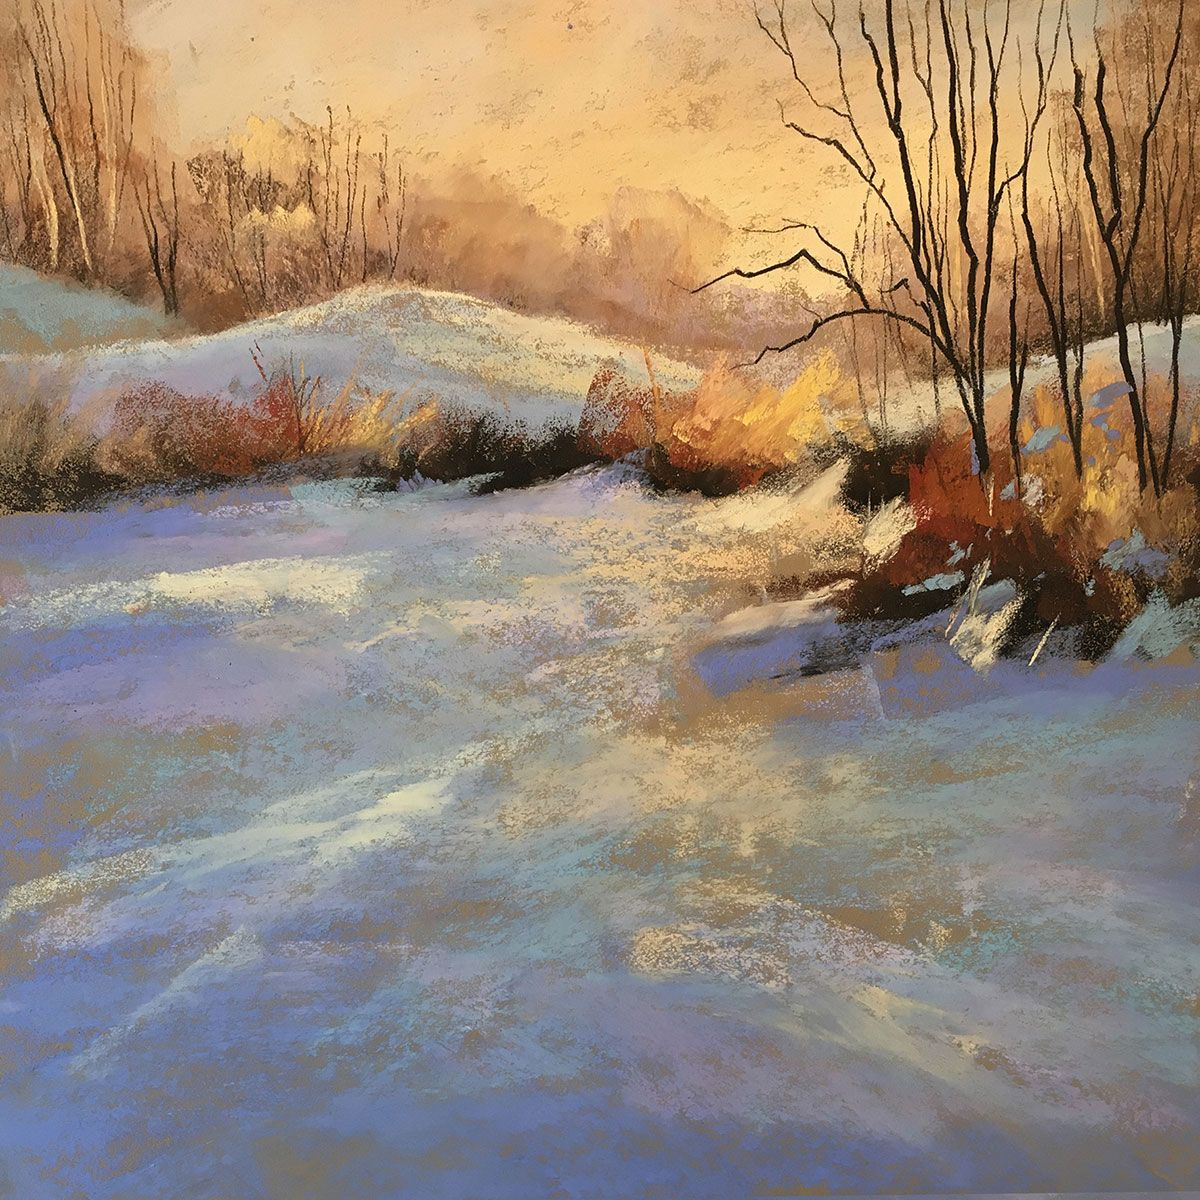 Landscape Painting With Les Darlow And Schmincke Soft